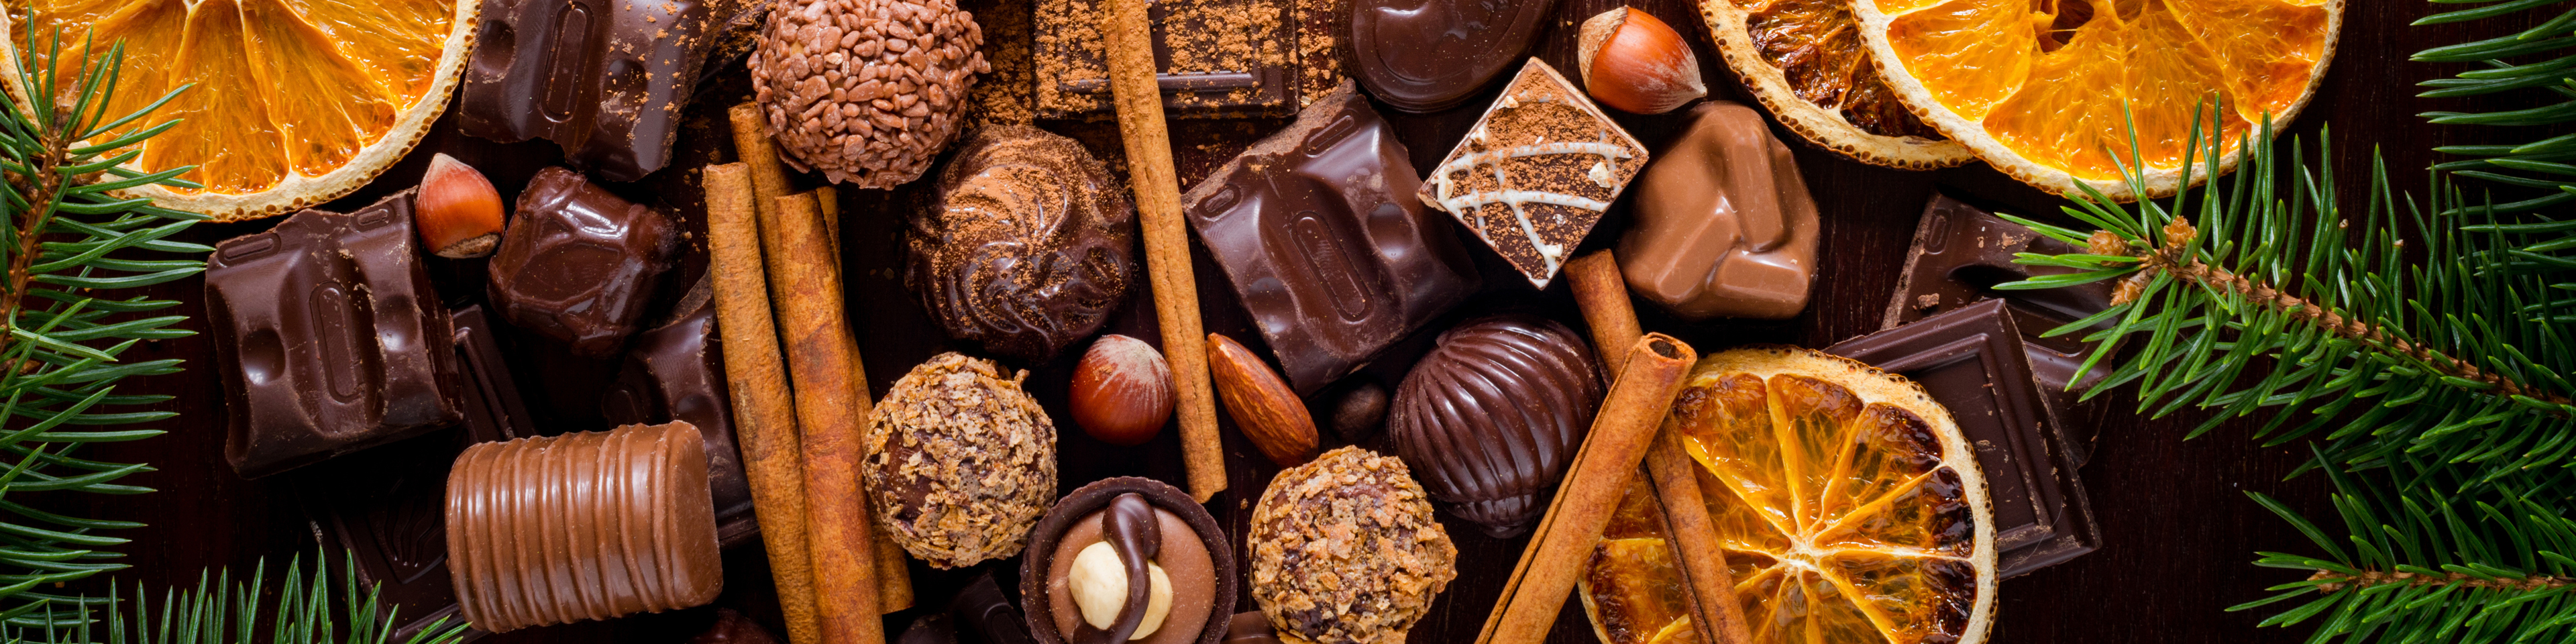 Christmas sweets, chocolates, spices, chocolate truffles and dried oranges on wooden background